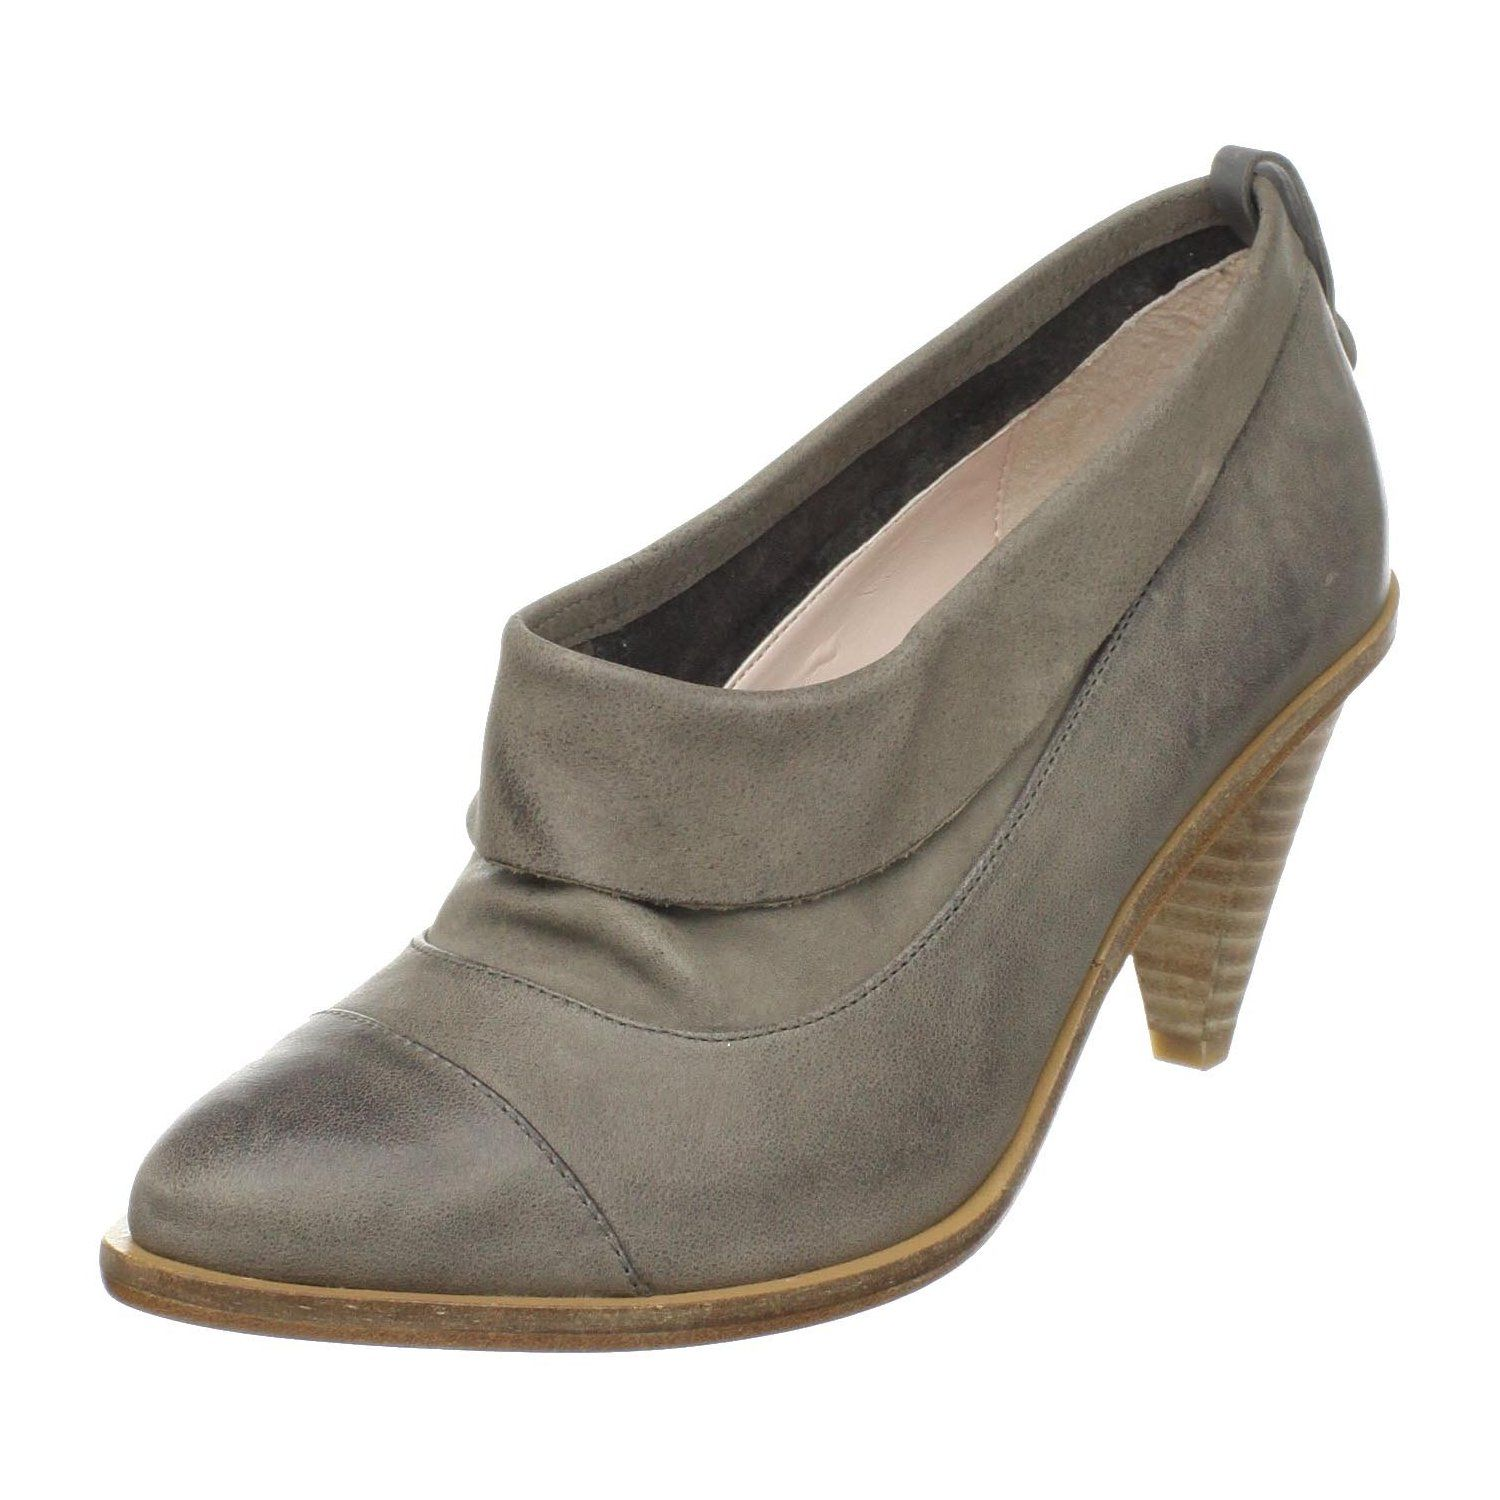 9734168c99a Plenty by Tracy Reese Women s Gina Bootie in Light Gray